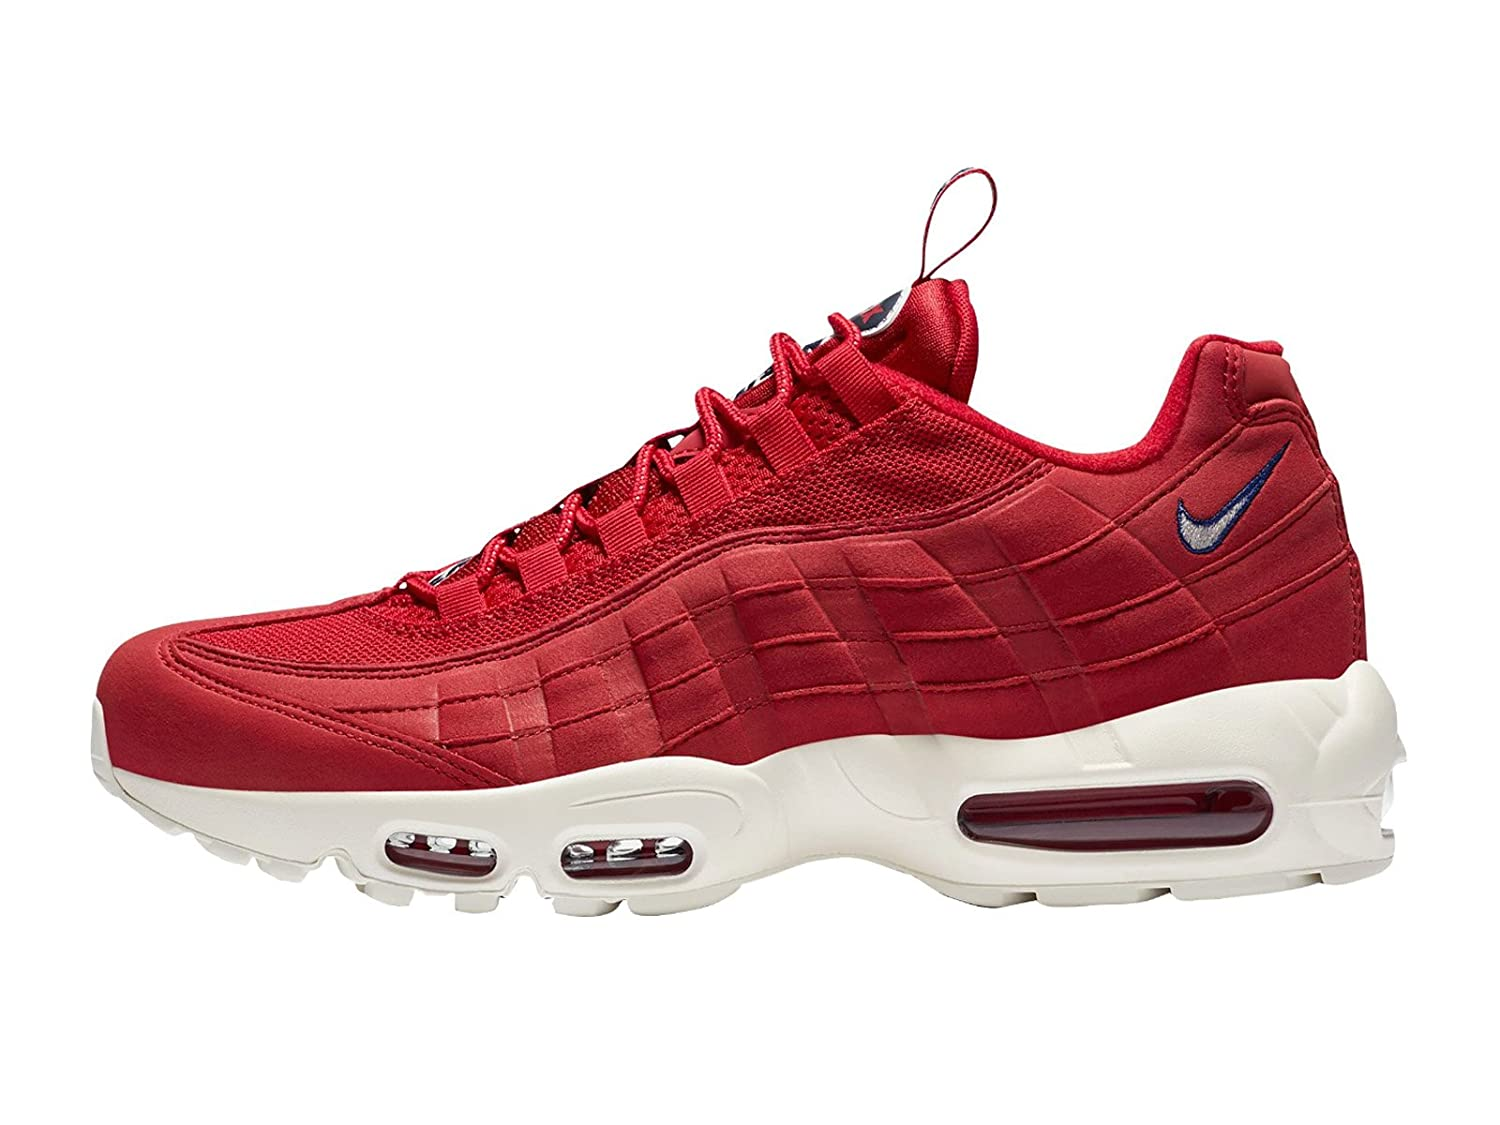 online retailer 32d96 22b0a Nike Men s Air Max 95 Tt Fitness Shoes  Amazon.co.uk  Shoes   Bags